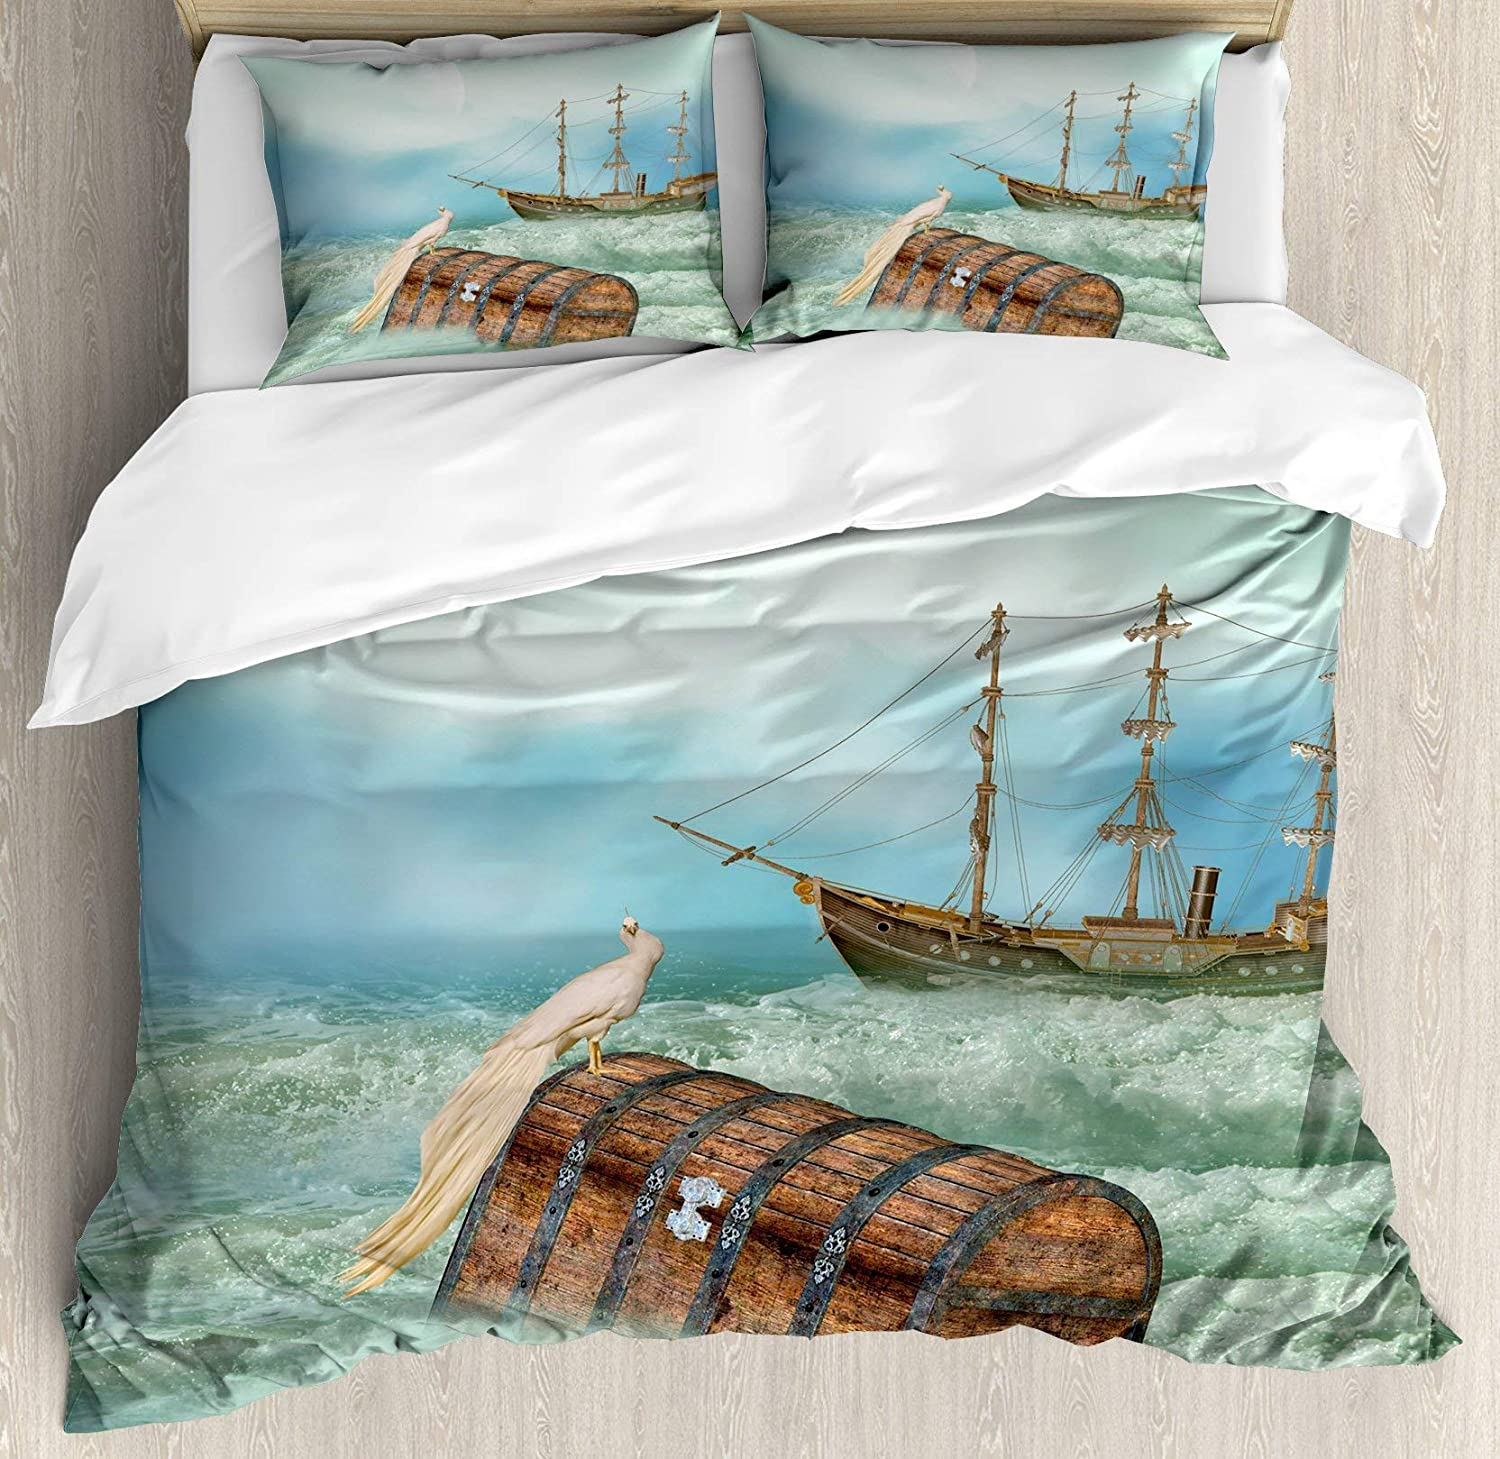 Multi 3 Twin BULING Art 4pc Bedding Set Twin Size, Grafitti Like Sketchy Style colorful Painting Human Like Face Dog Animal Image Floral Lightweight Microfiber Duvet Cover Set, Multi colord